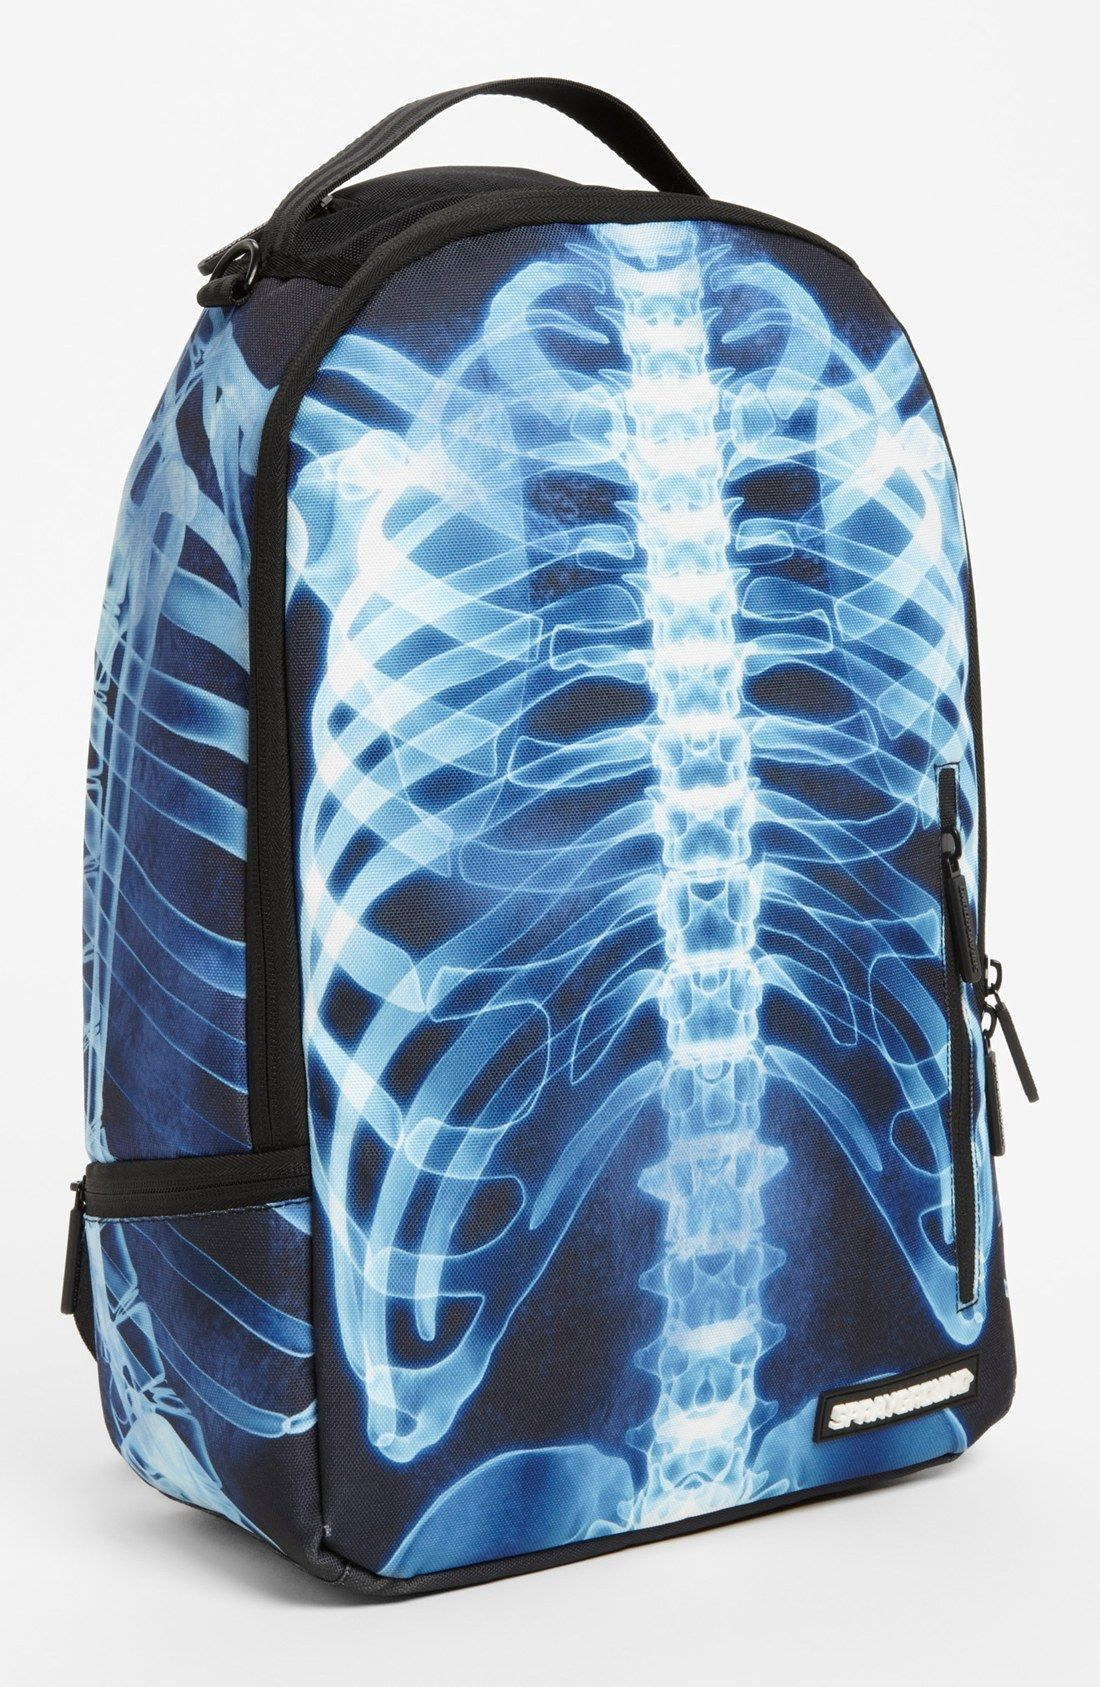 Personality Packed Back to School Backpacks. Sprayground  X-Ray Bones   Backpack (Boys) 5401581bd700e